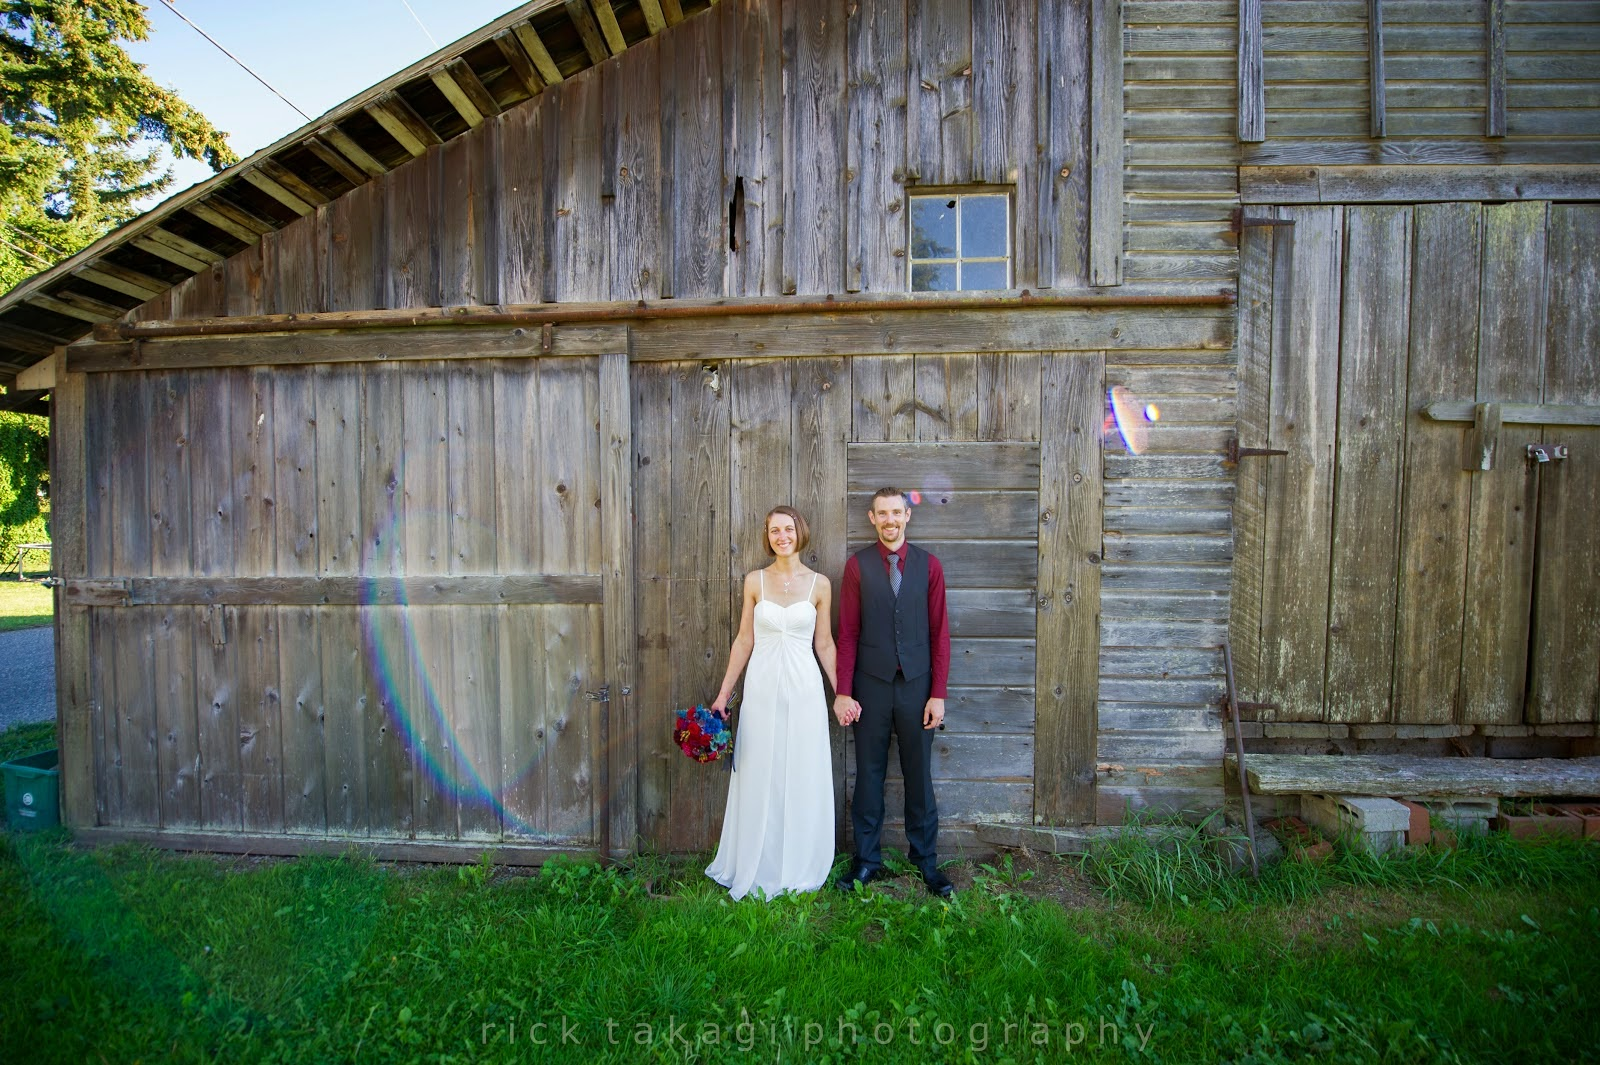 Aaron & Ashley pose in from of the barn at The Grand Willow Inn - Patricia Stimac, Seattle Wedding Officiant